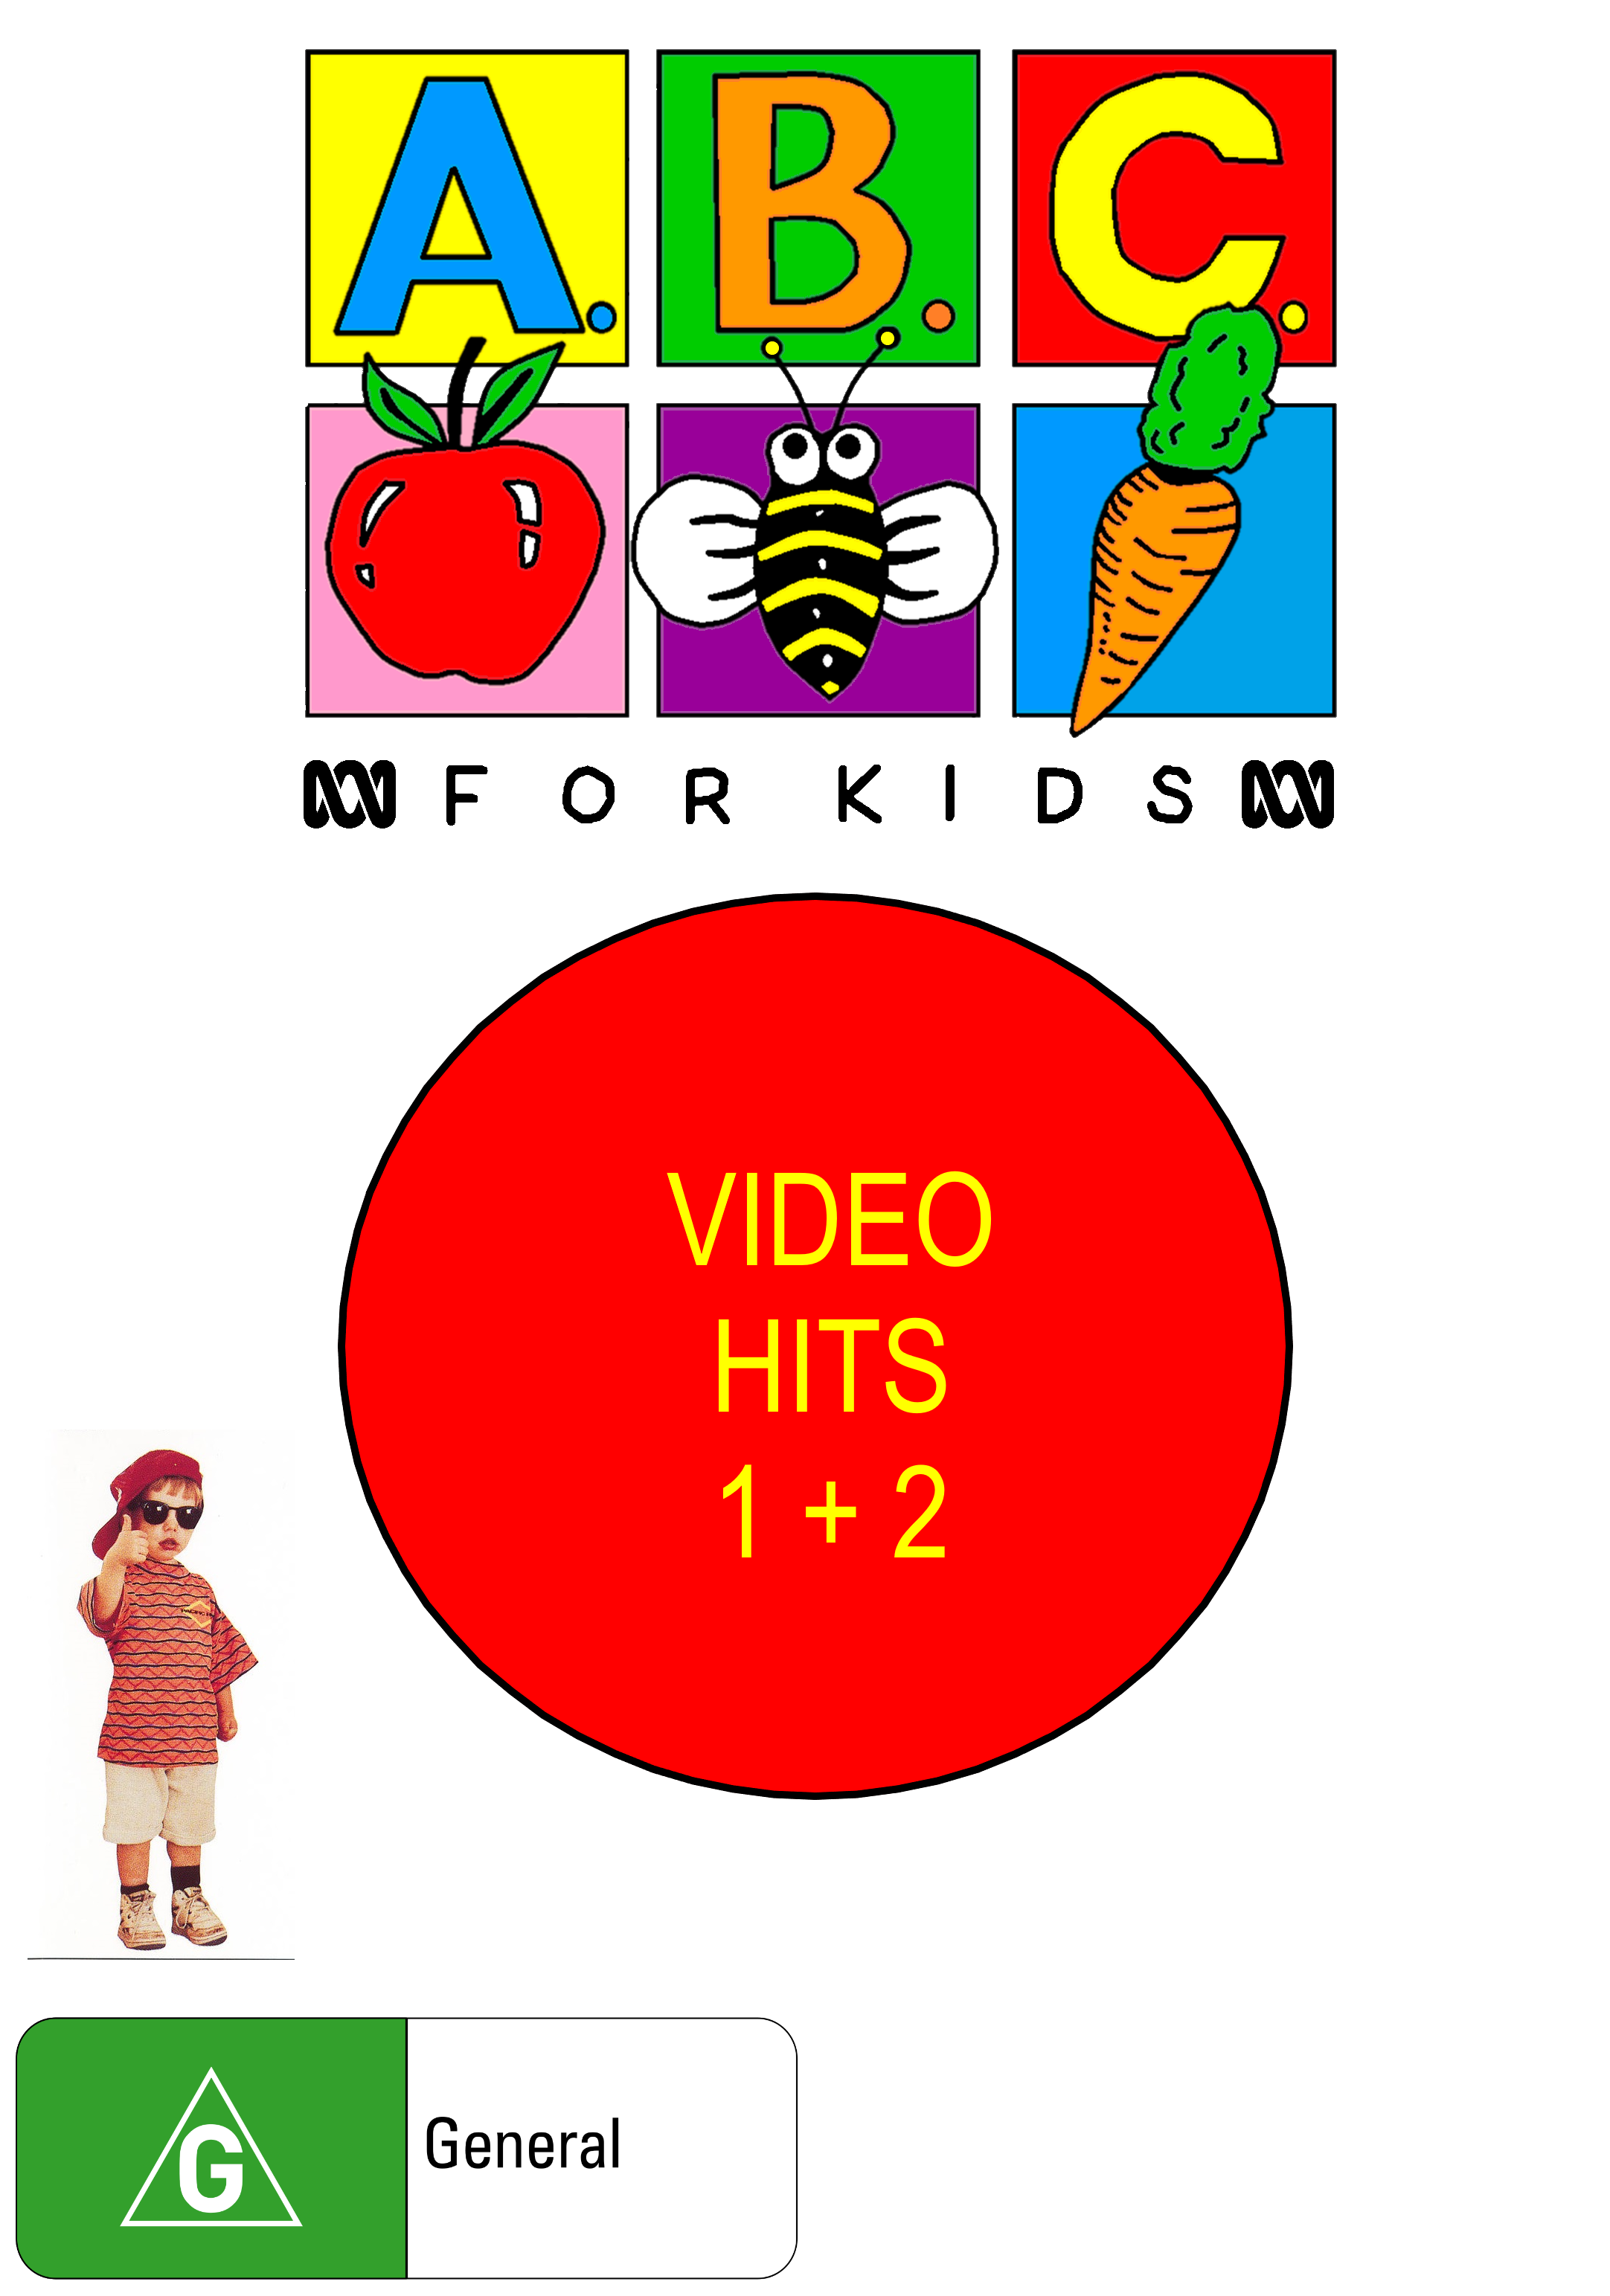 ABC for Kids Fanon: ABC for Kids Video Hits 1 + 2 (video)